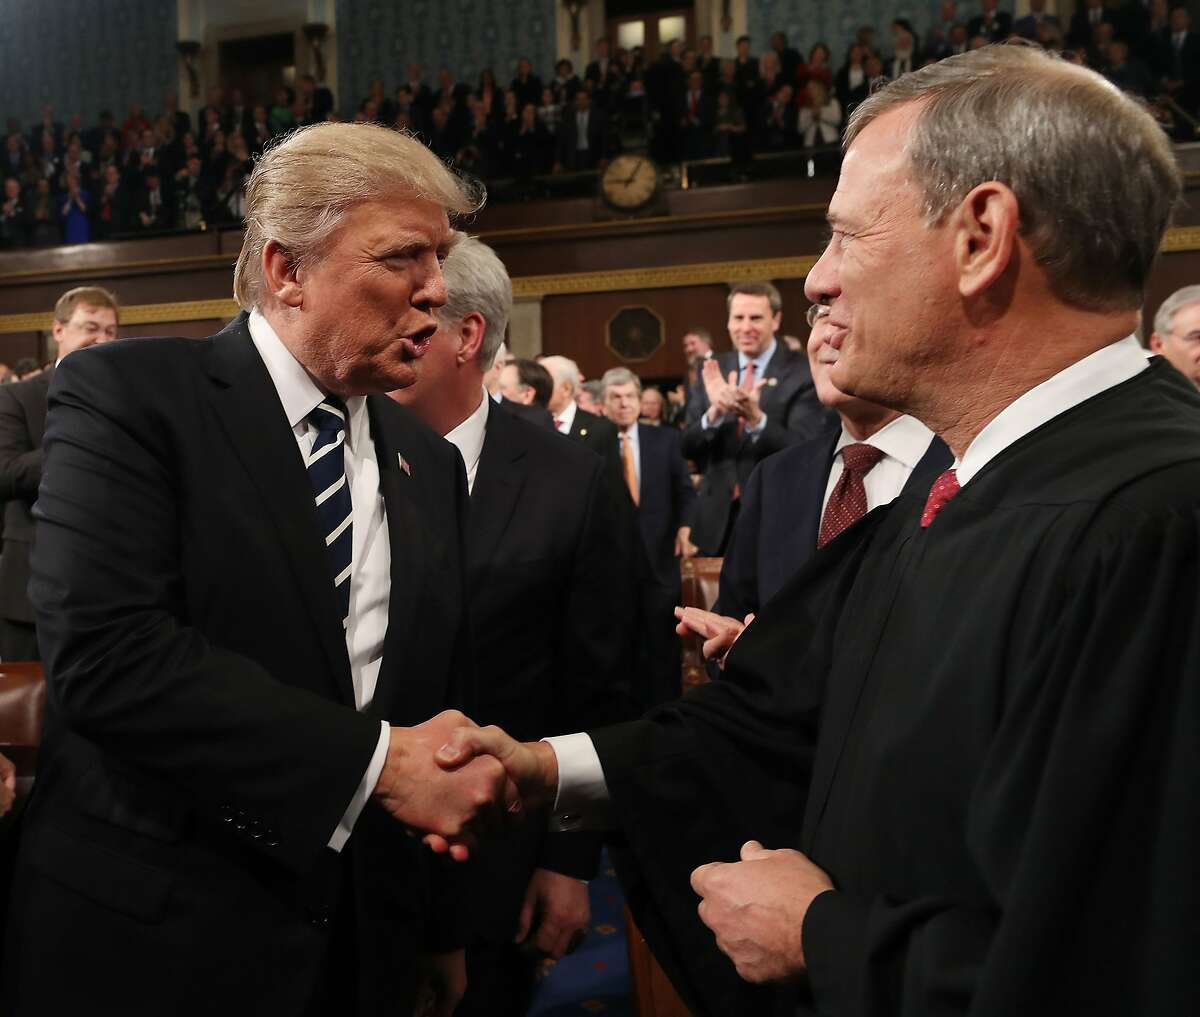 (FILES) In this file photo taken on February 28, 2017, US President Donald Trump (L) shakes hands with US Supreme Court Chief Justice John Roberts (R) as Trump arrives to deliver his first address to a joint session of Congress in Washington, DC.